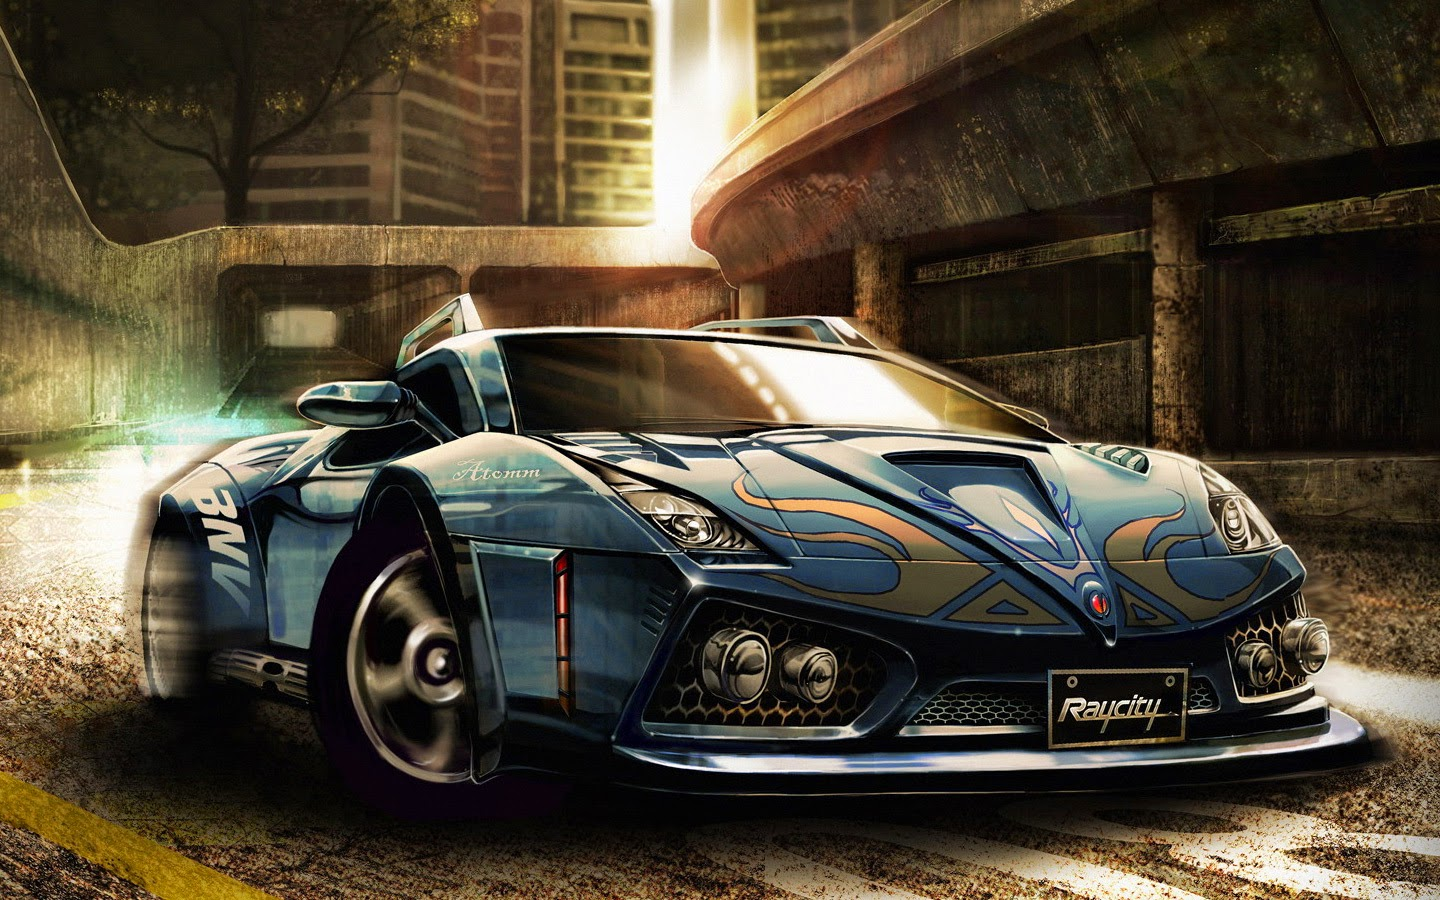 2015 Blue Ford Mustang Shelby Gt500 Muscle Car Wallpaper